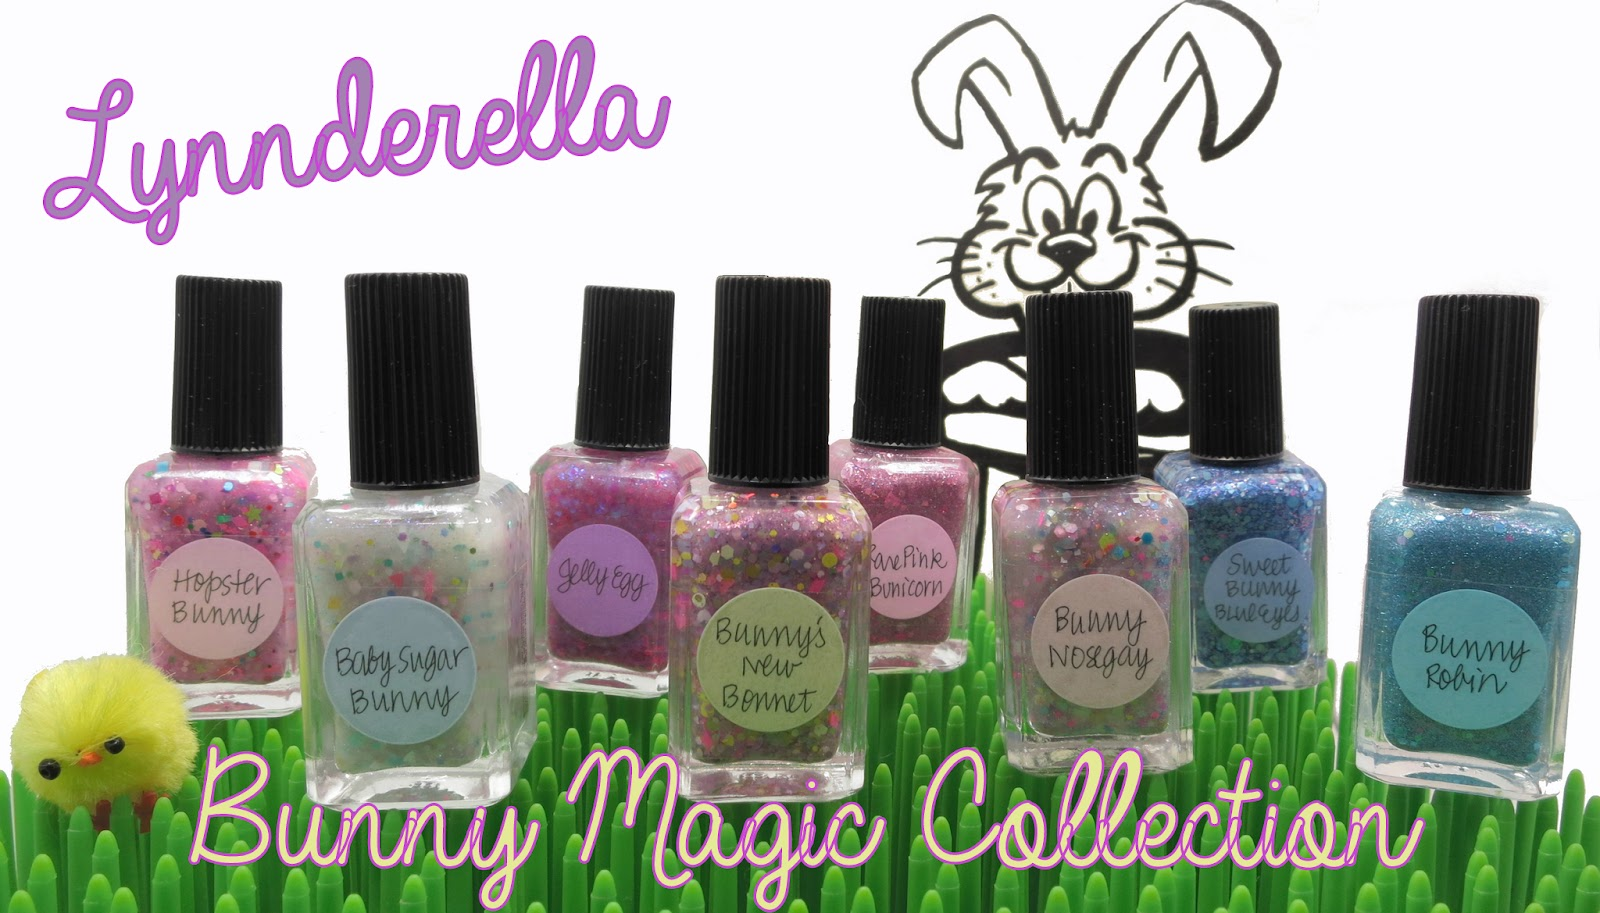 Lynnderella Bunny Magic Collection